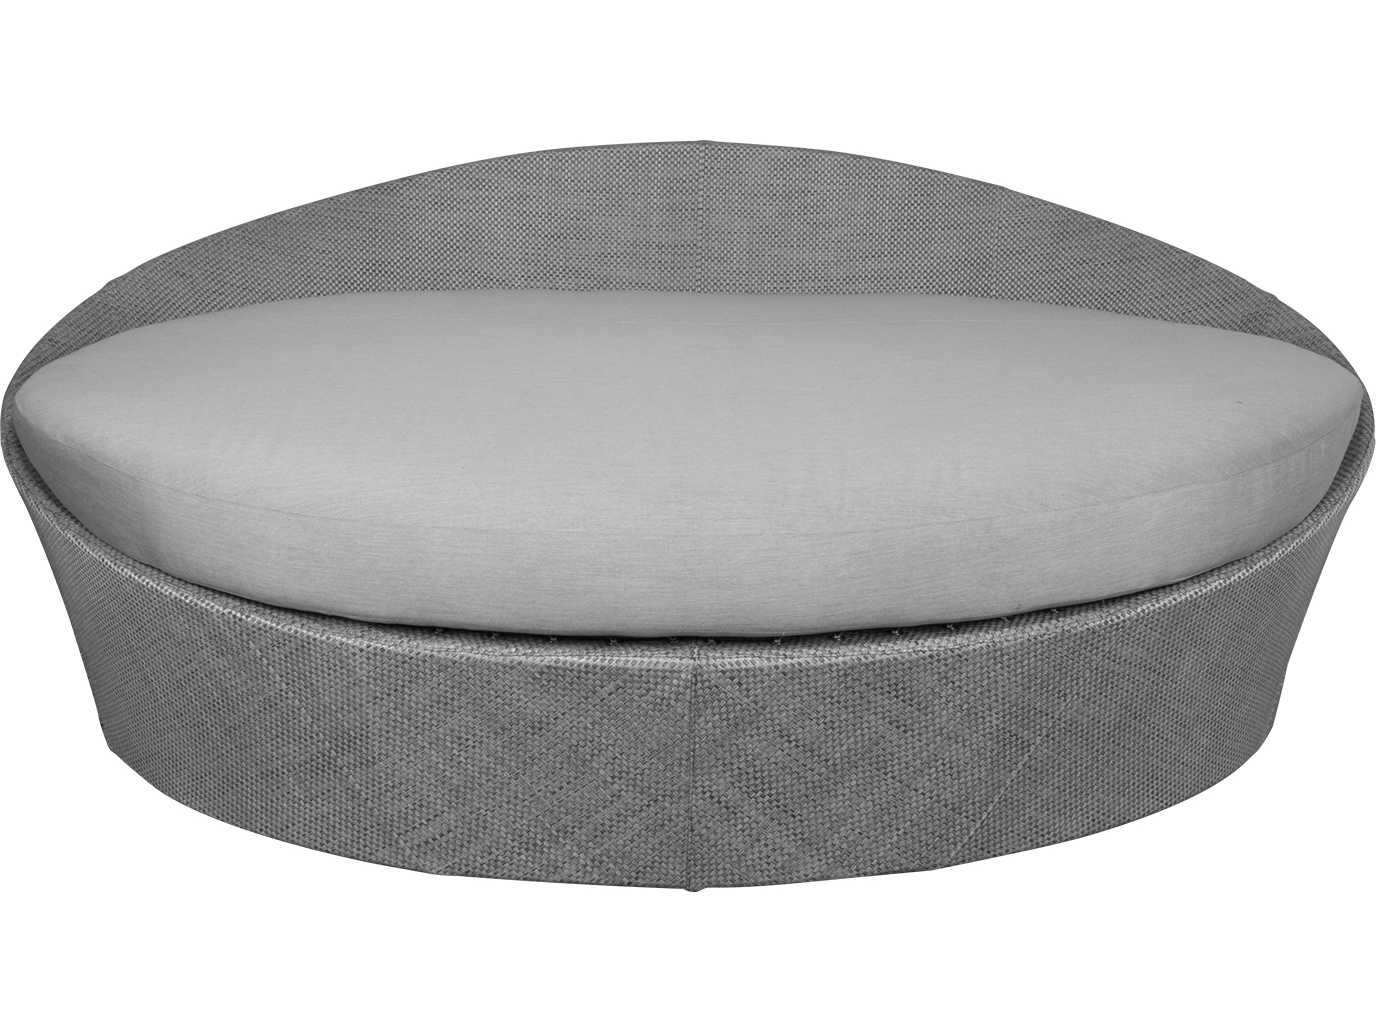 source outdoor furniture aqua large daybed round replacement cushion so 3401 223c. Black Bedroom Furniture Sets. Home Design Ideas